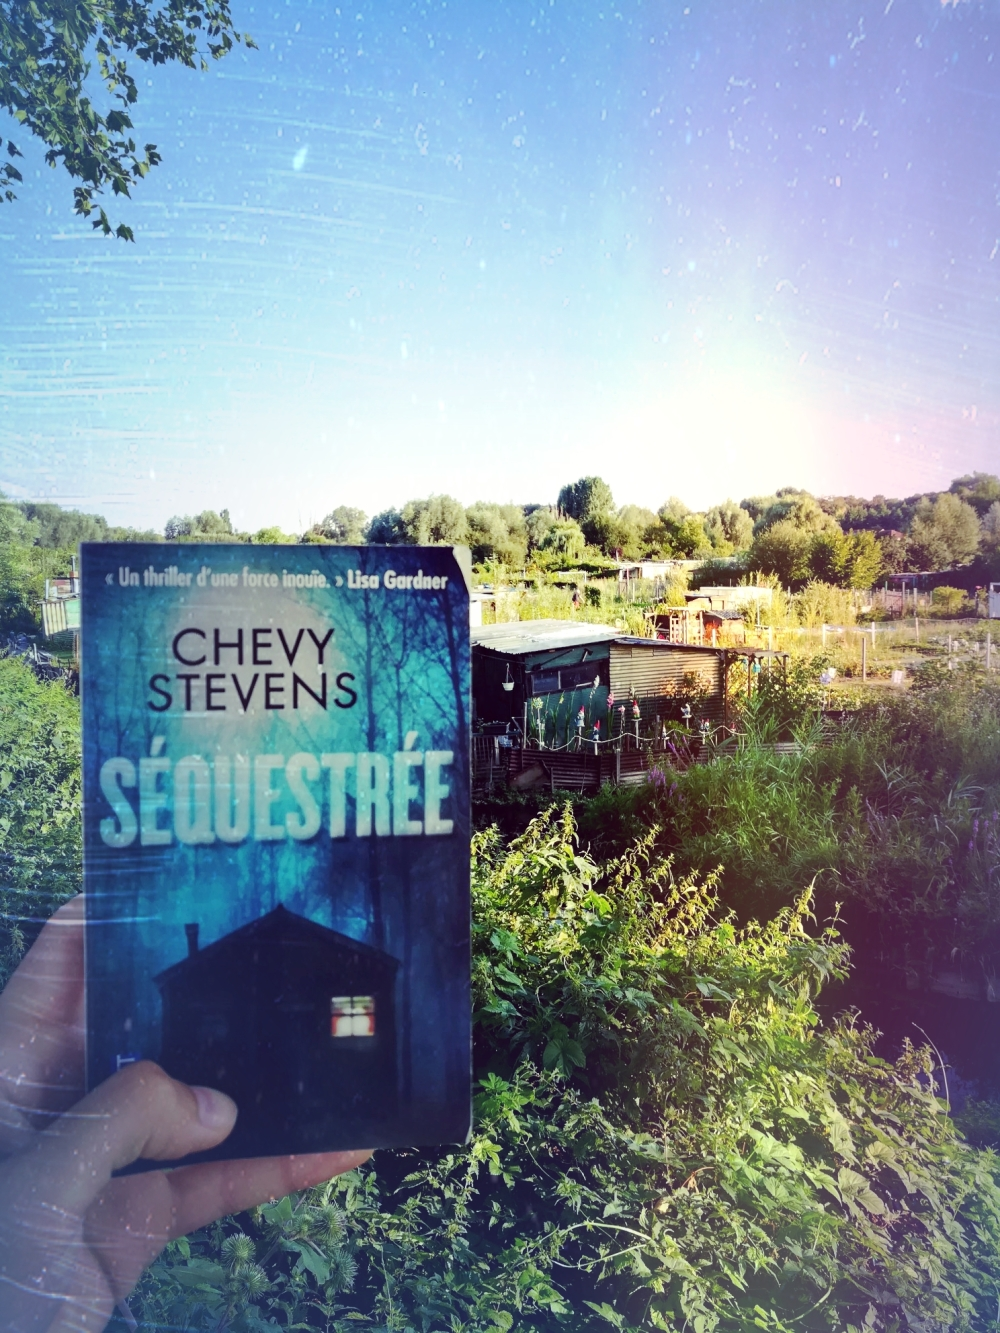 tomabooks-chevy-stevens-sequestree